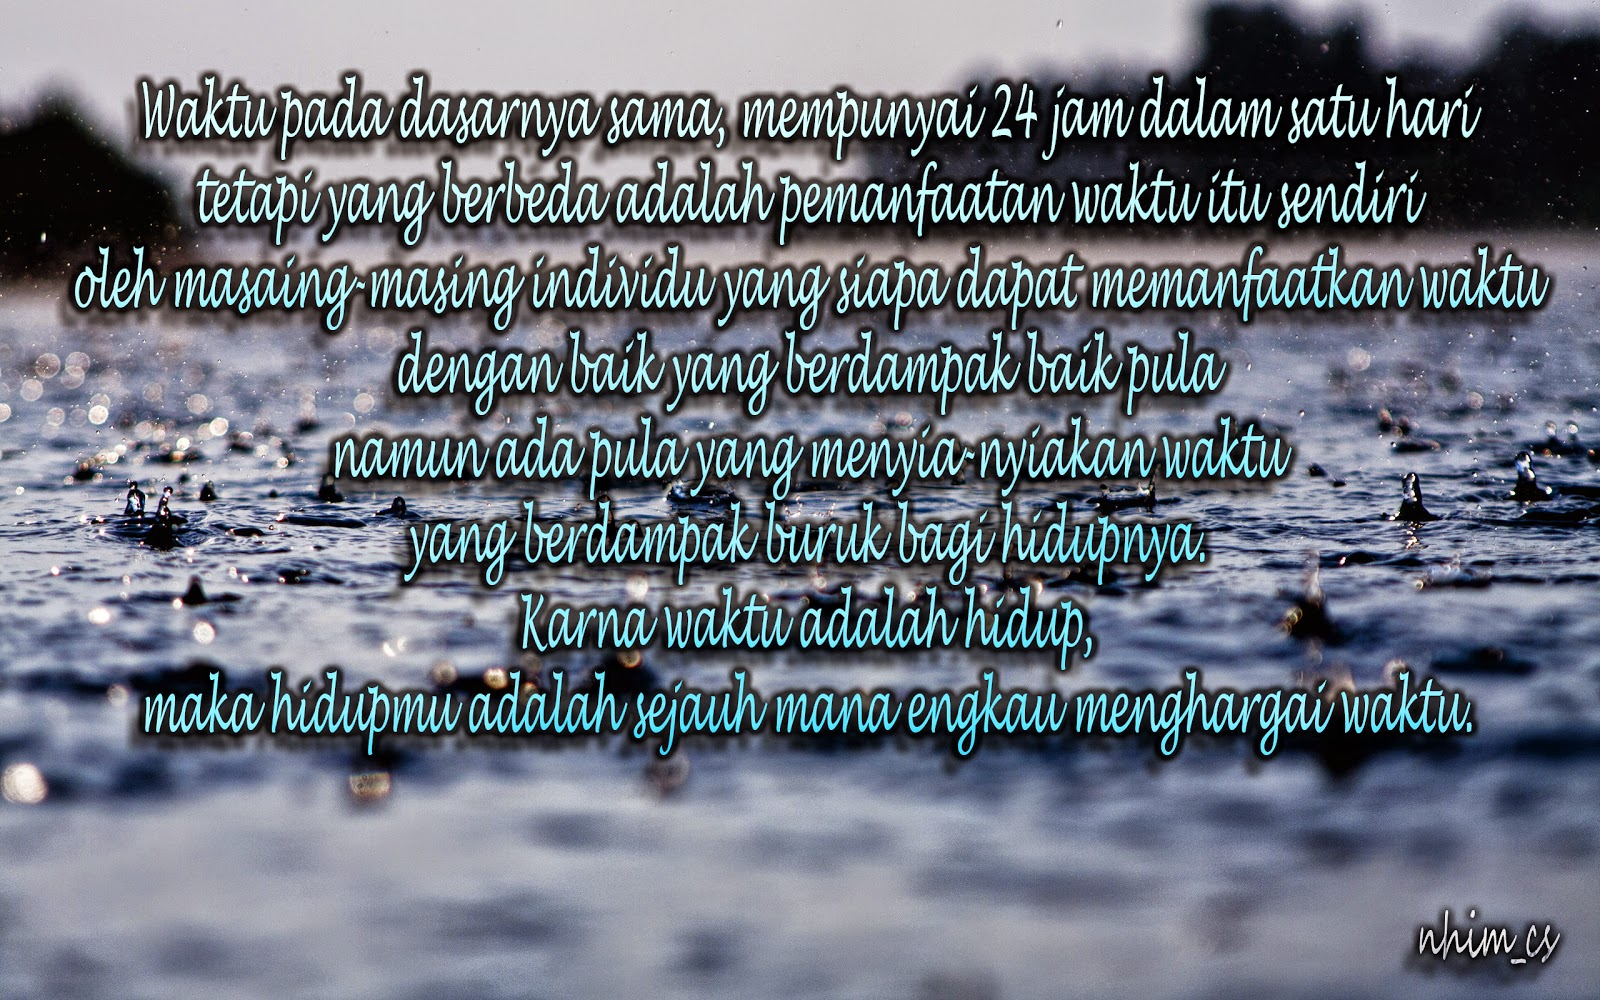 Kata Mutiara Islami Tentang Hujan Kata Kata Romantis Tentang Hujan 820655 Hd Wallpaper Backgrounds Download